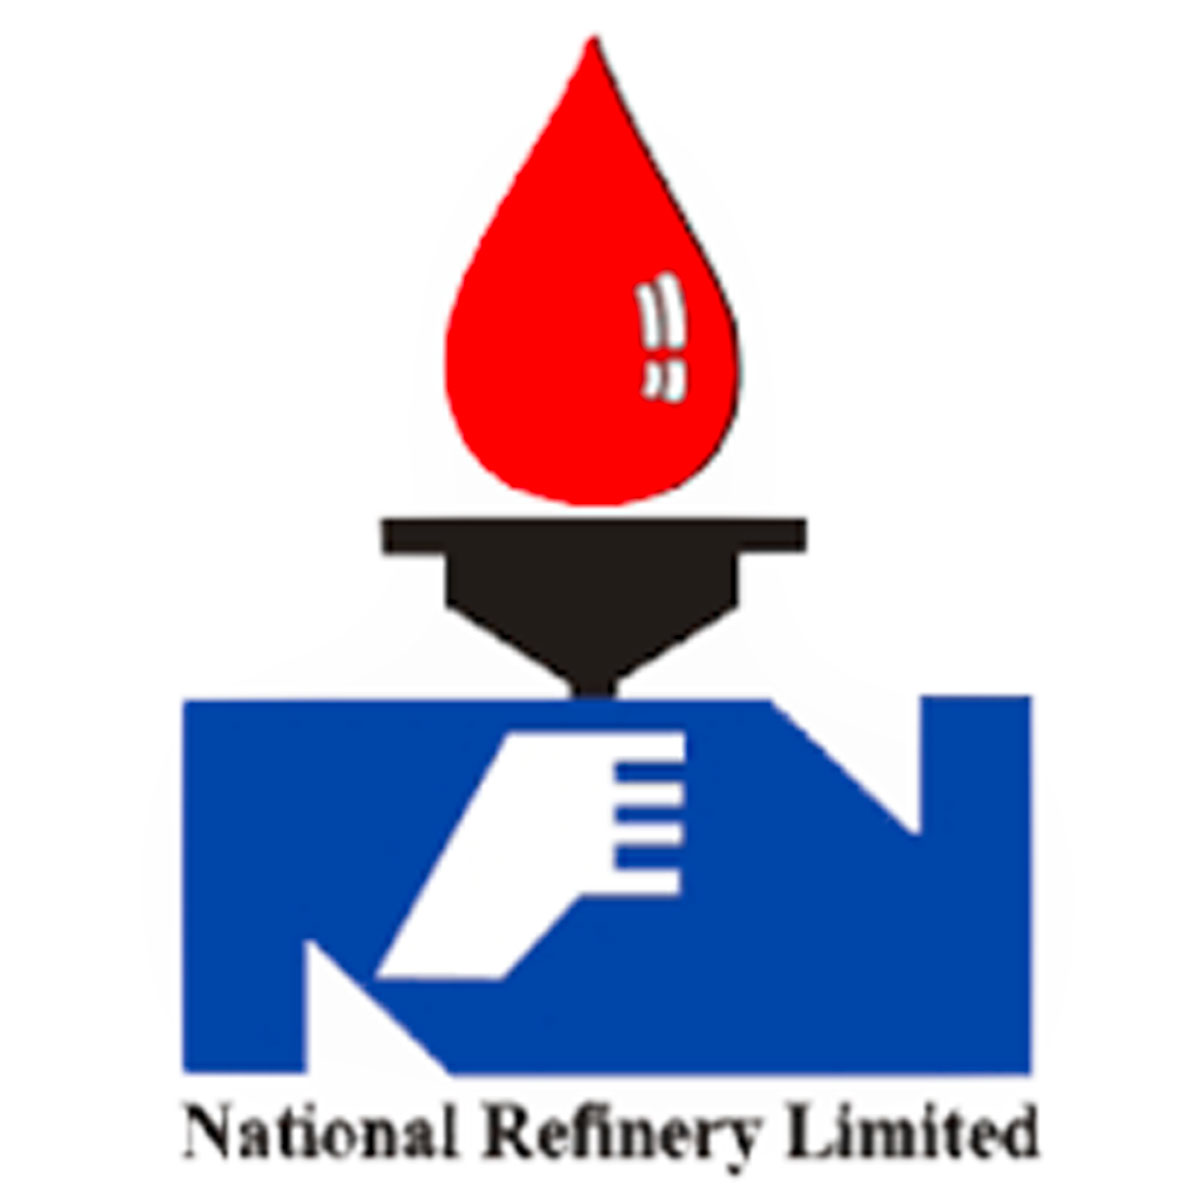 National Refinery Limited: SCAM's Institutional Customer